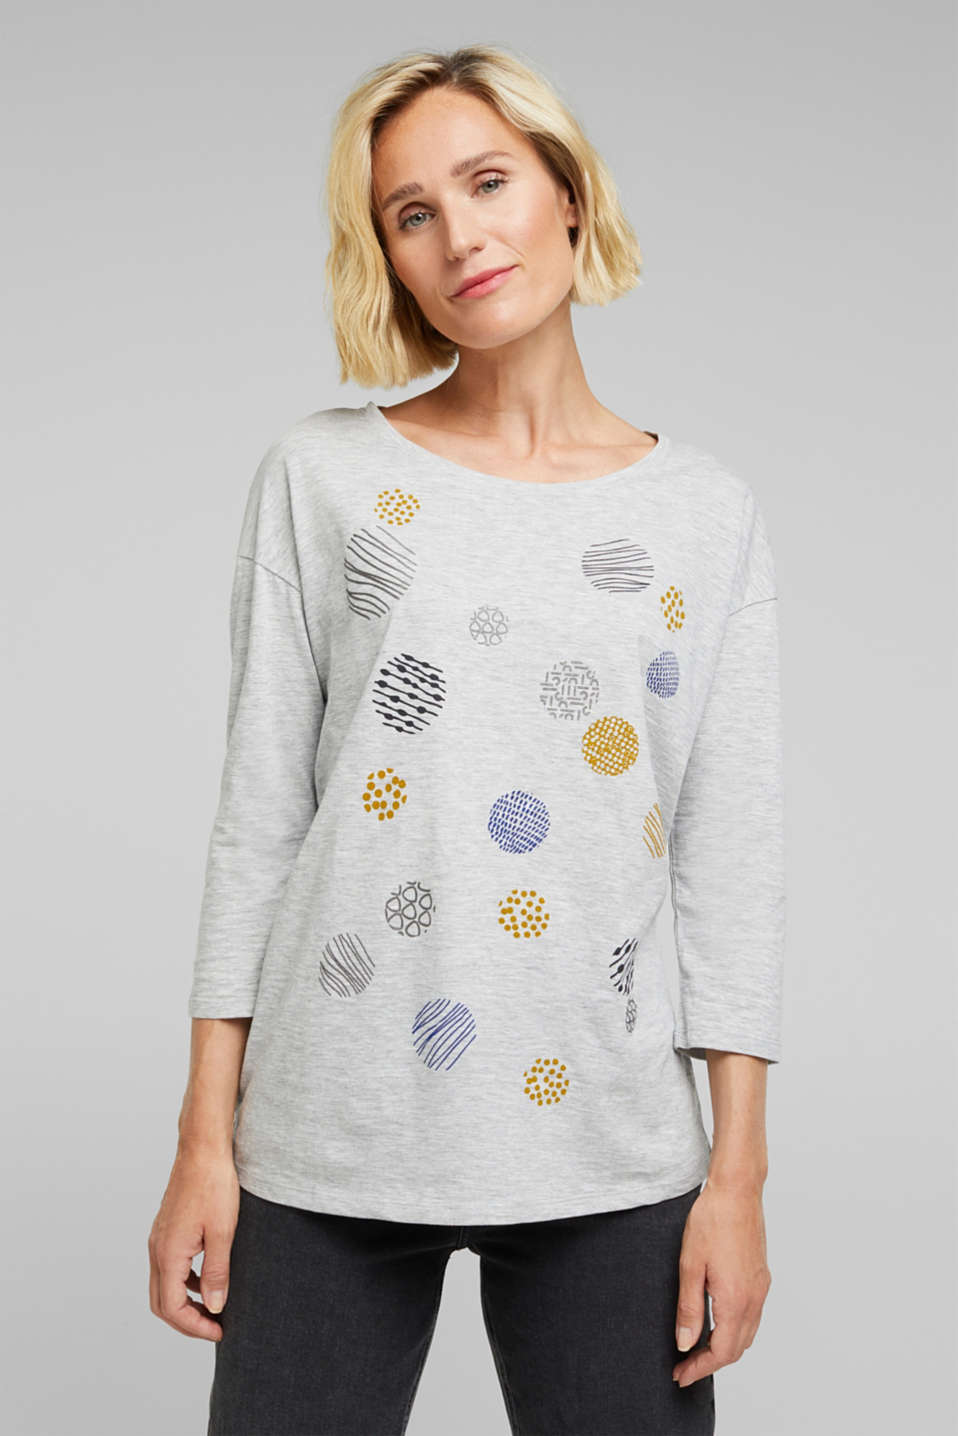 Esprit - Printed long sleeve top, organic cotton